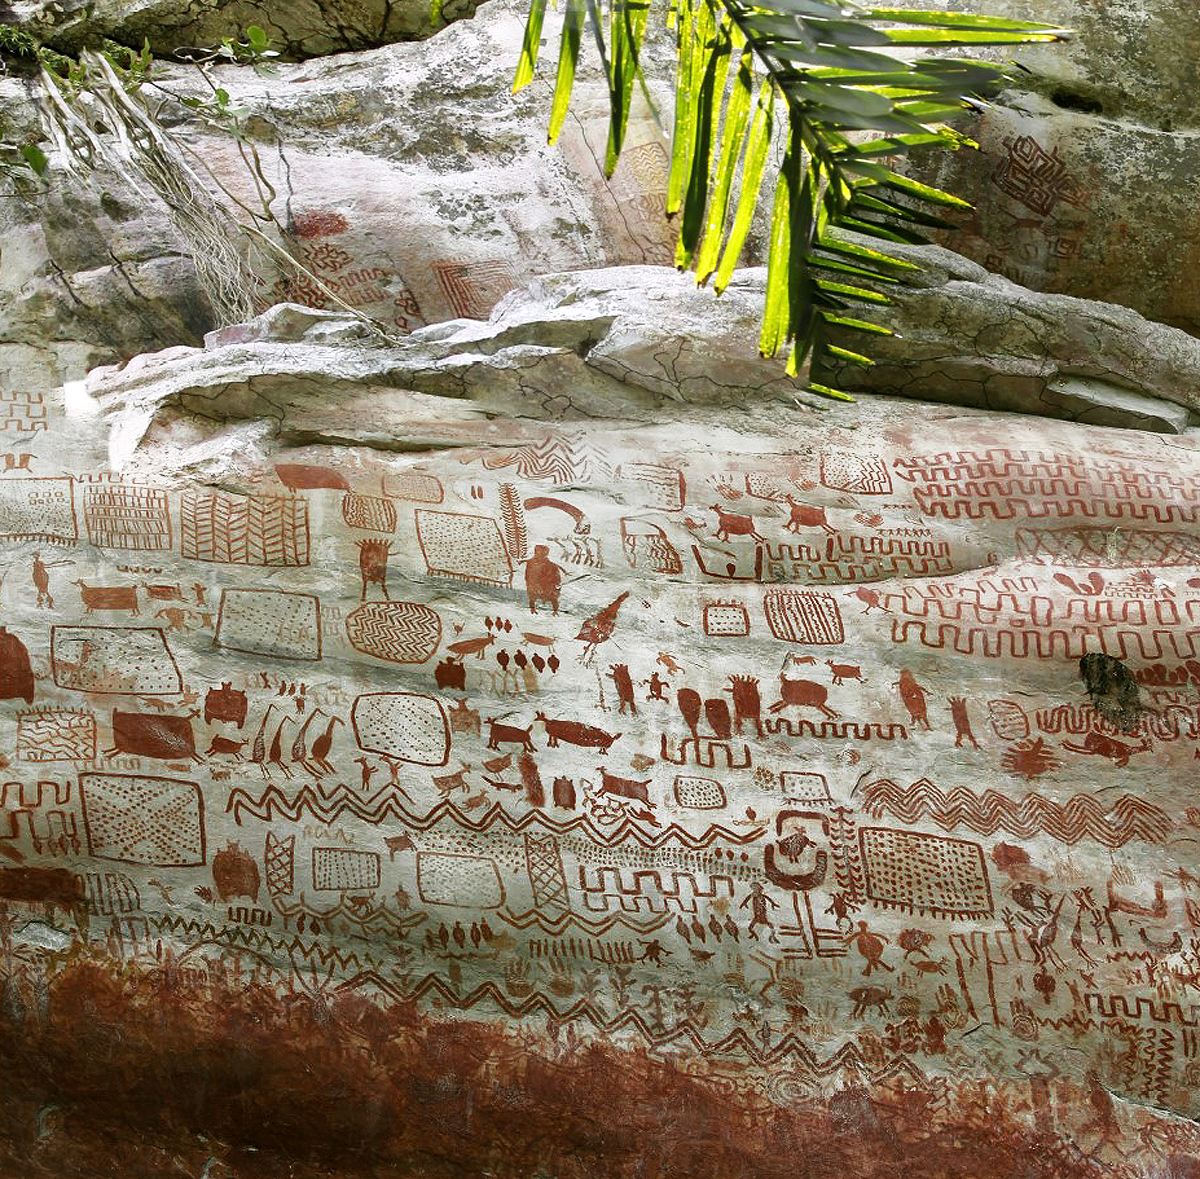 Colombia Amazon rain forest rock art animals humans archaeologists paintings